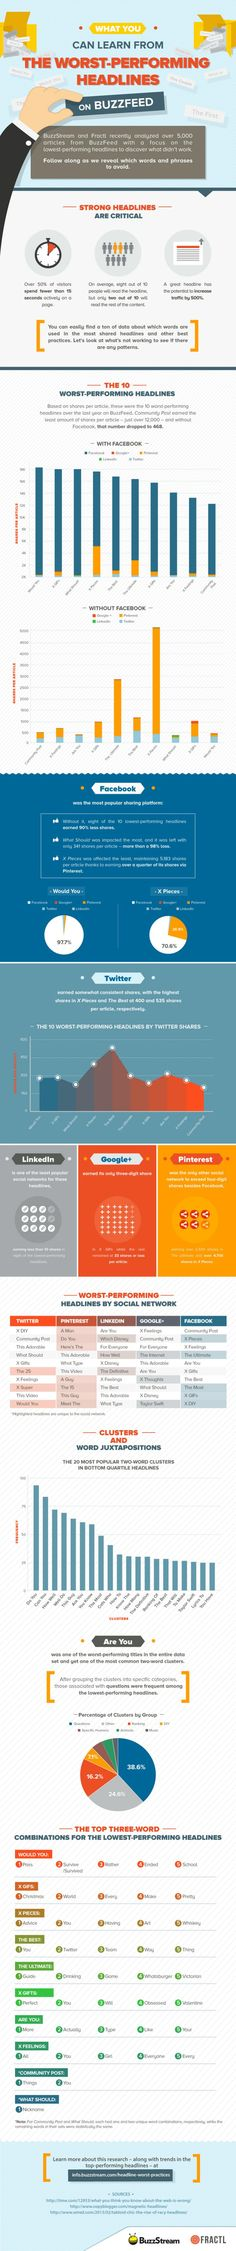 What You Can Learn From The Worst-Performing Headlines On Buzzfeed - #infographic